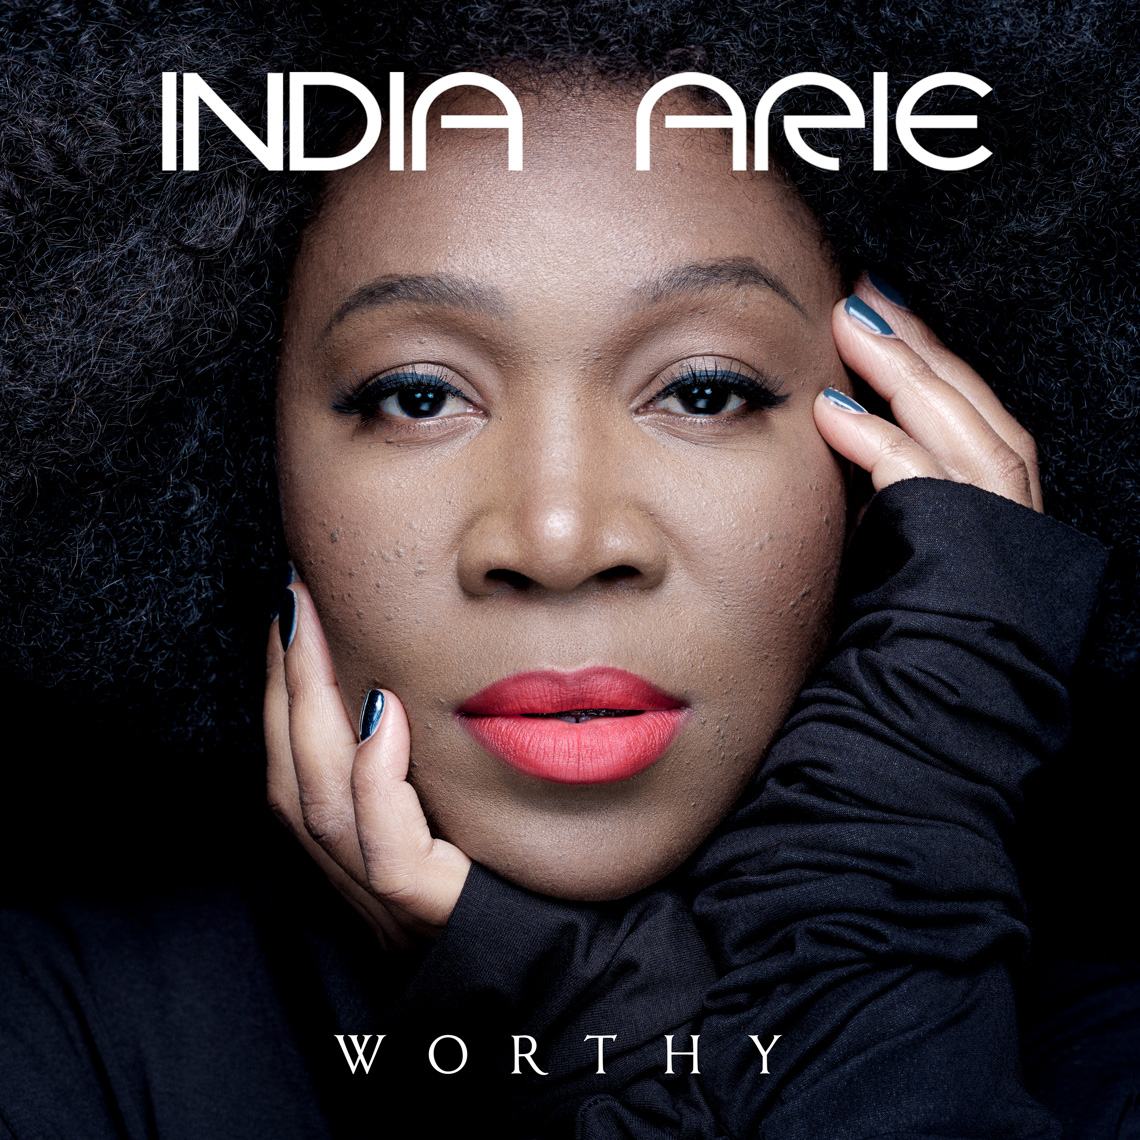 India Arie / Benchmark